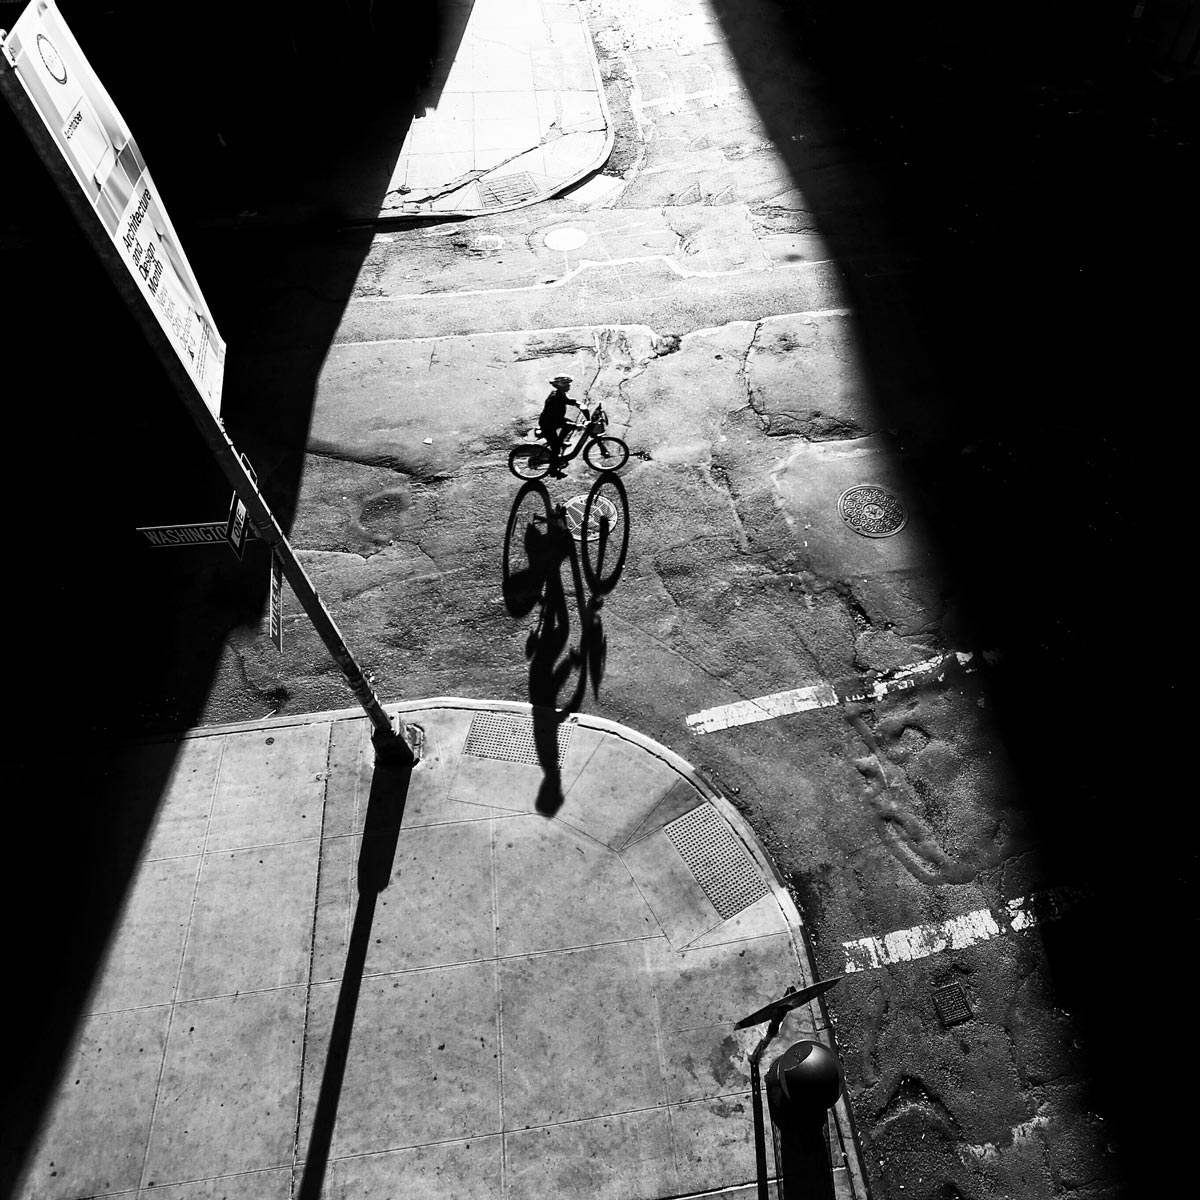 Black and white photo by Jason Peterson of someone biking through sliver of light